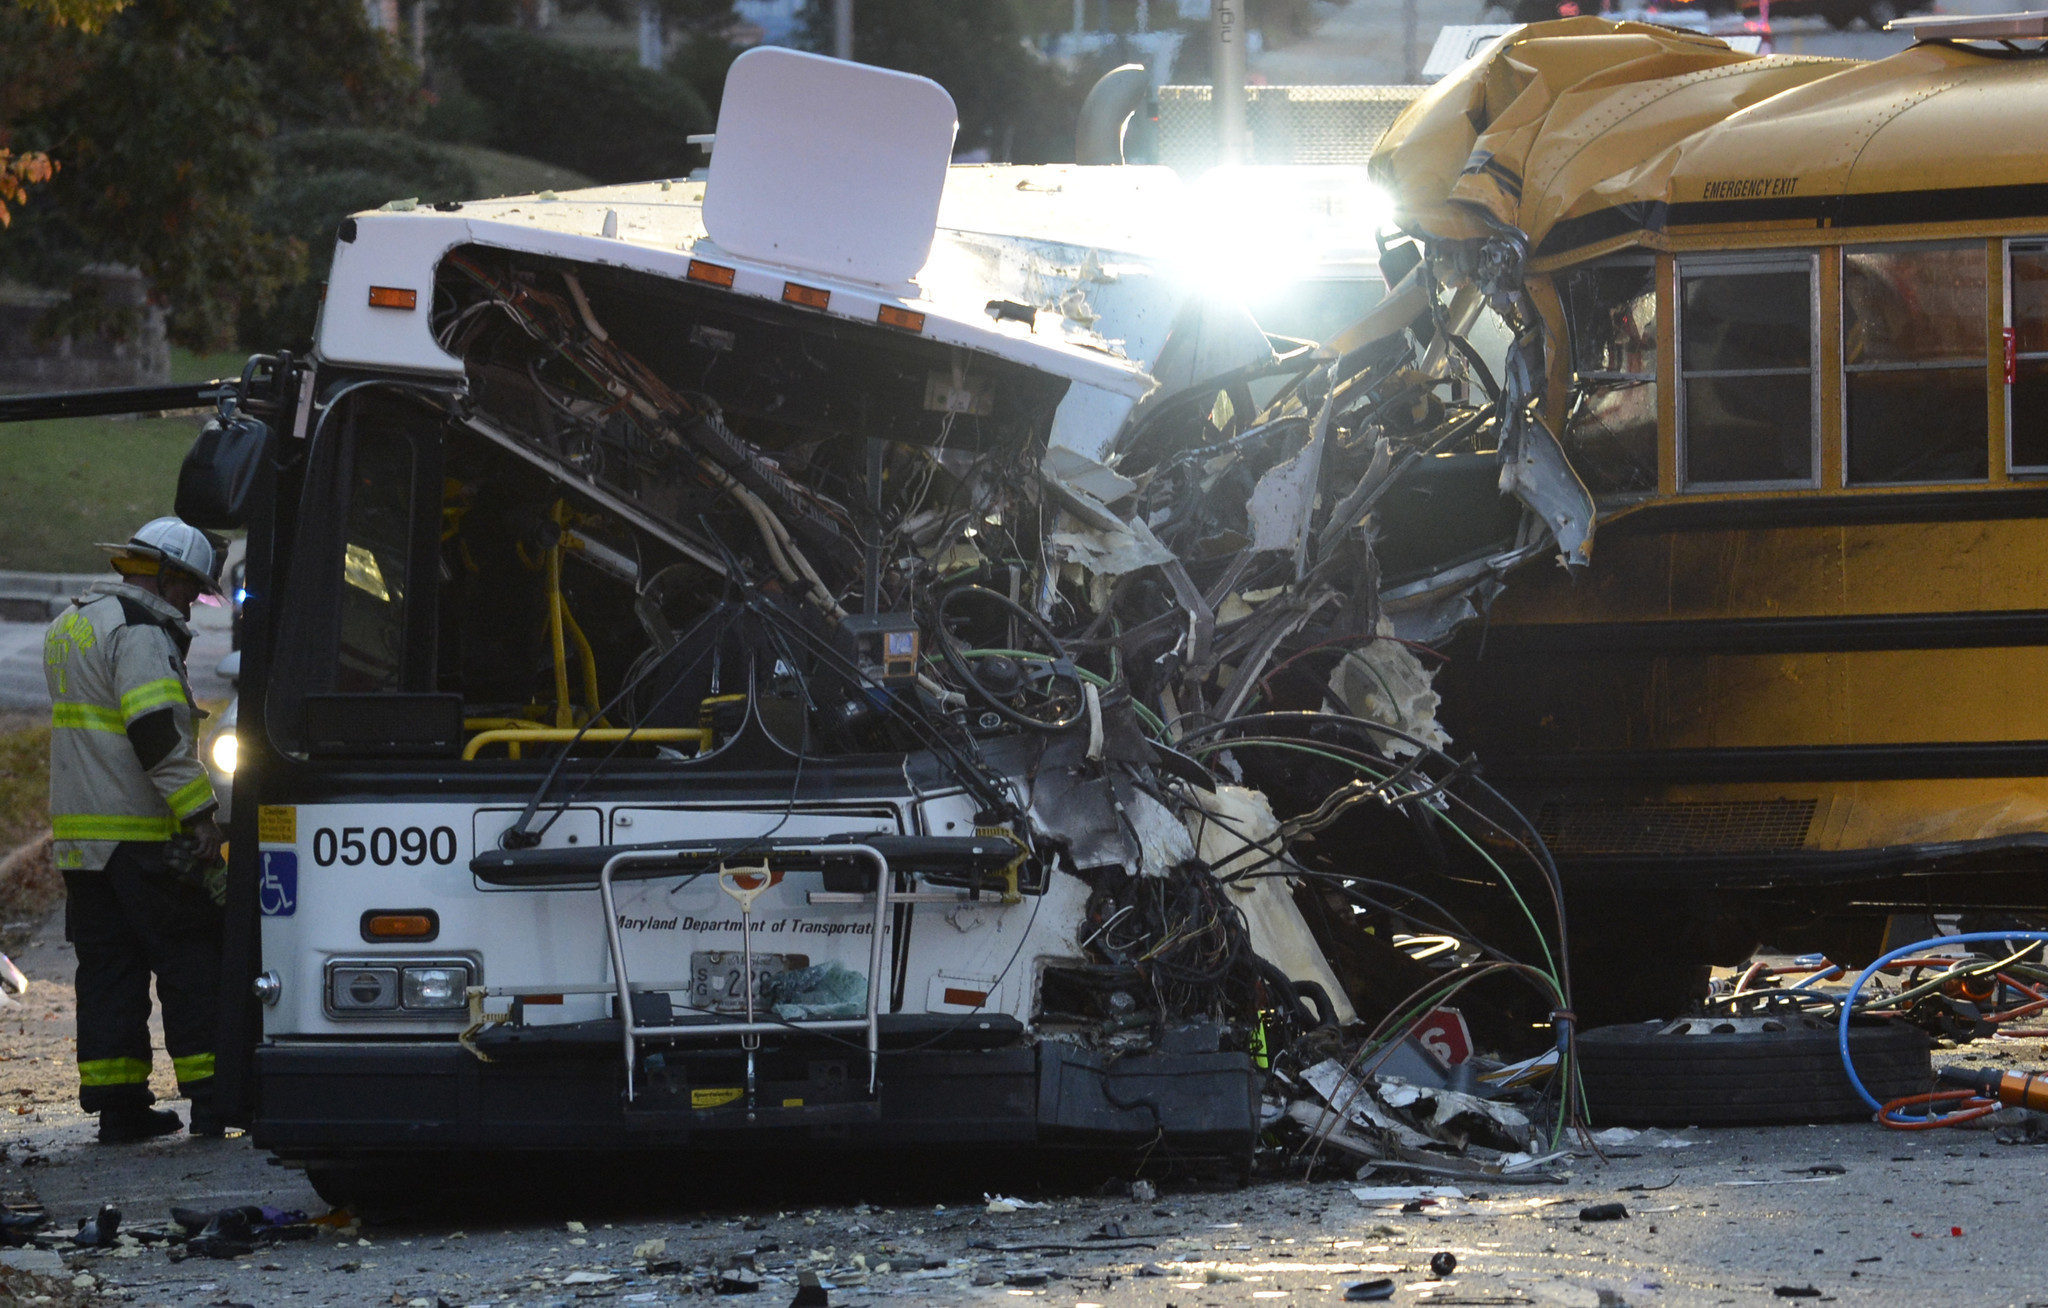 Ntsb >> Driver in fatal Baltimore bus crash had history of crashes, seizures, NTSB report says ...